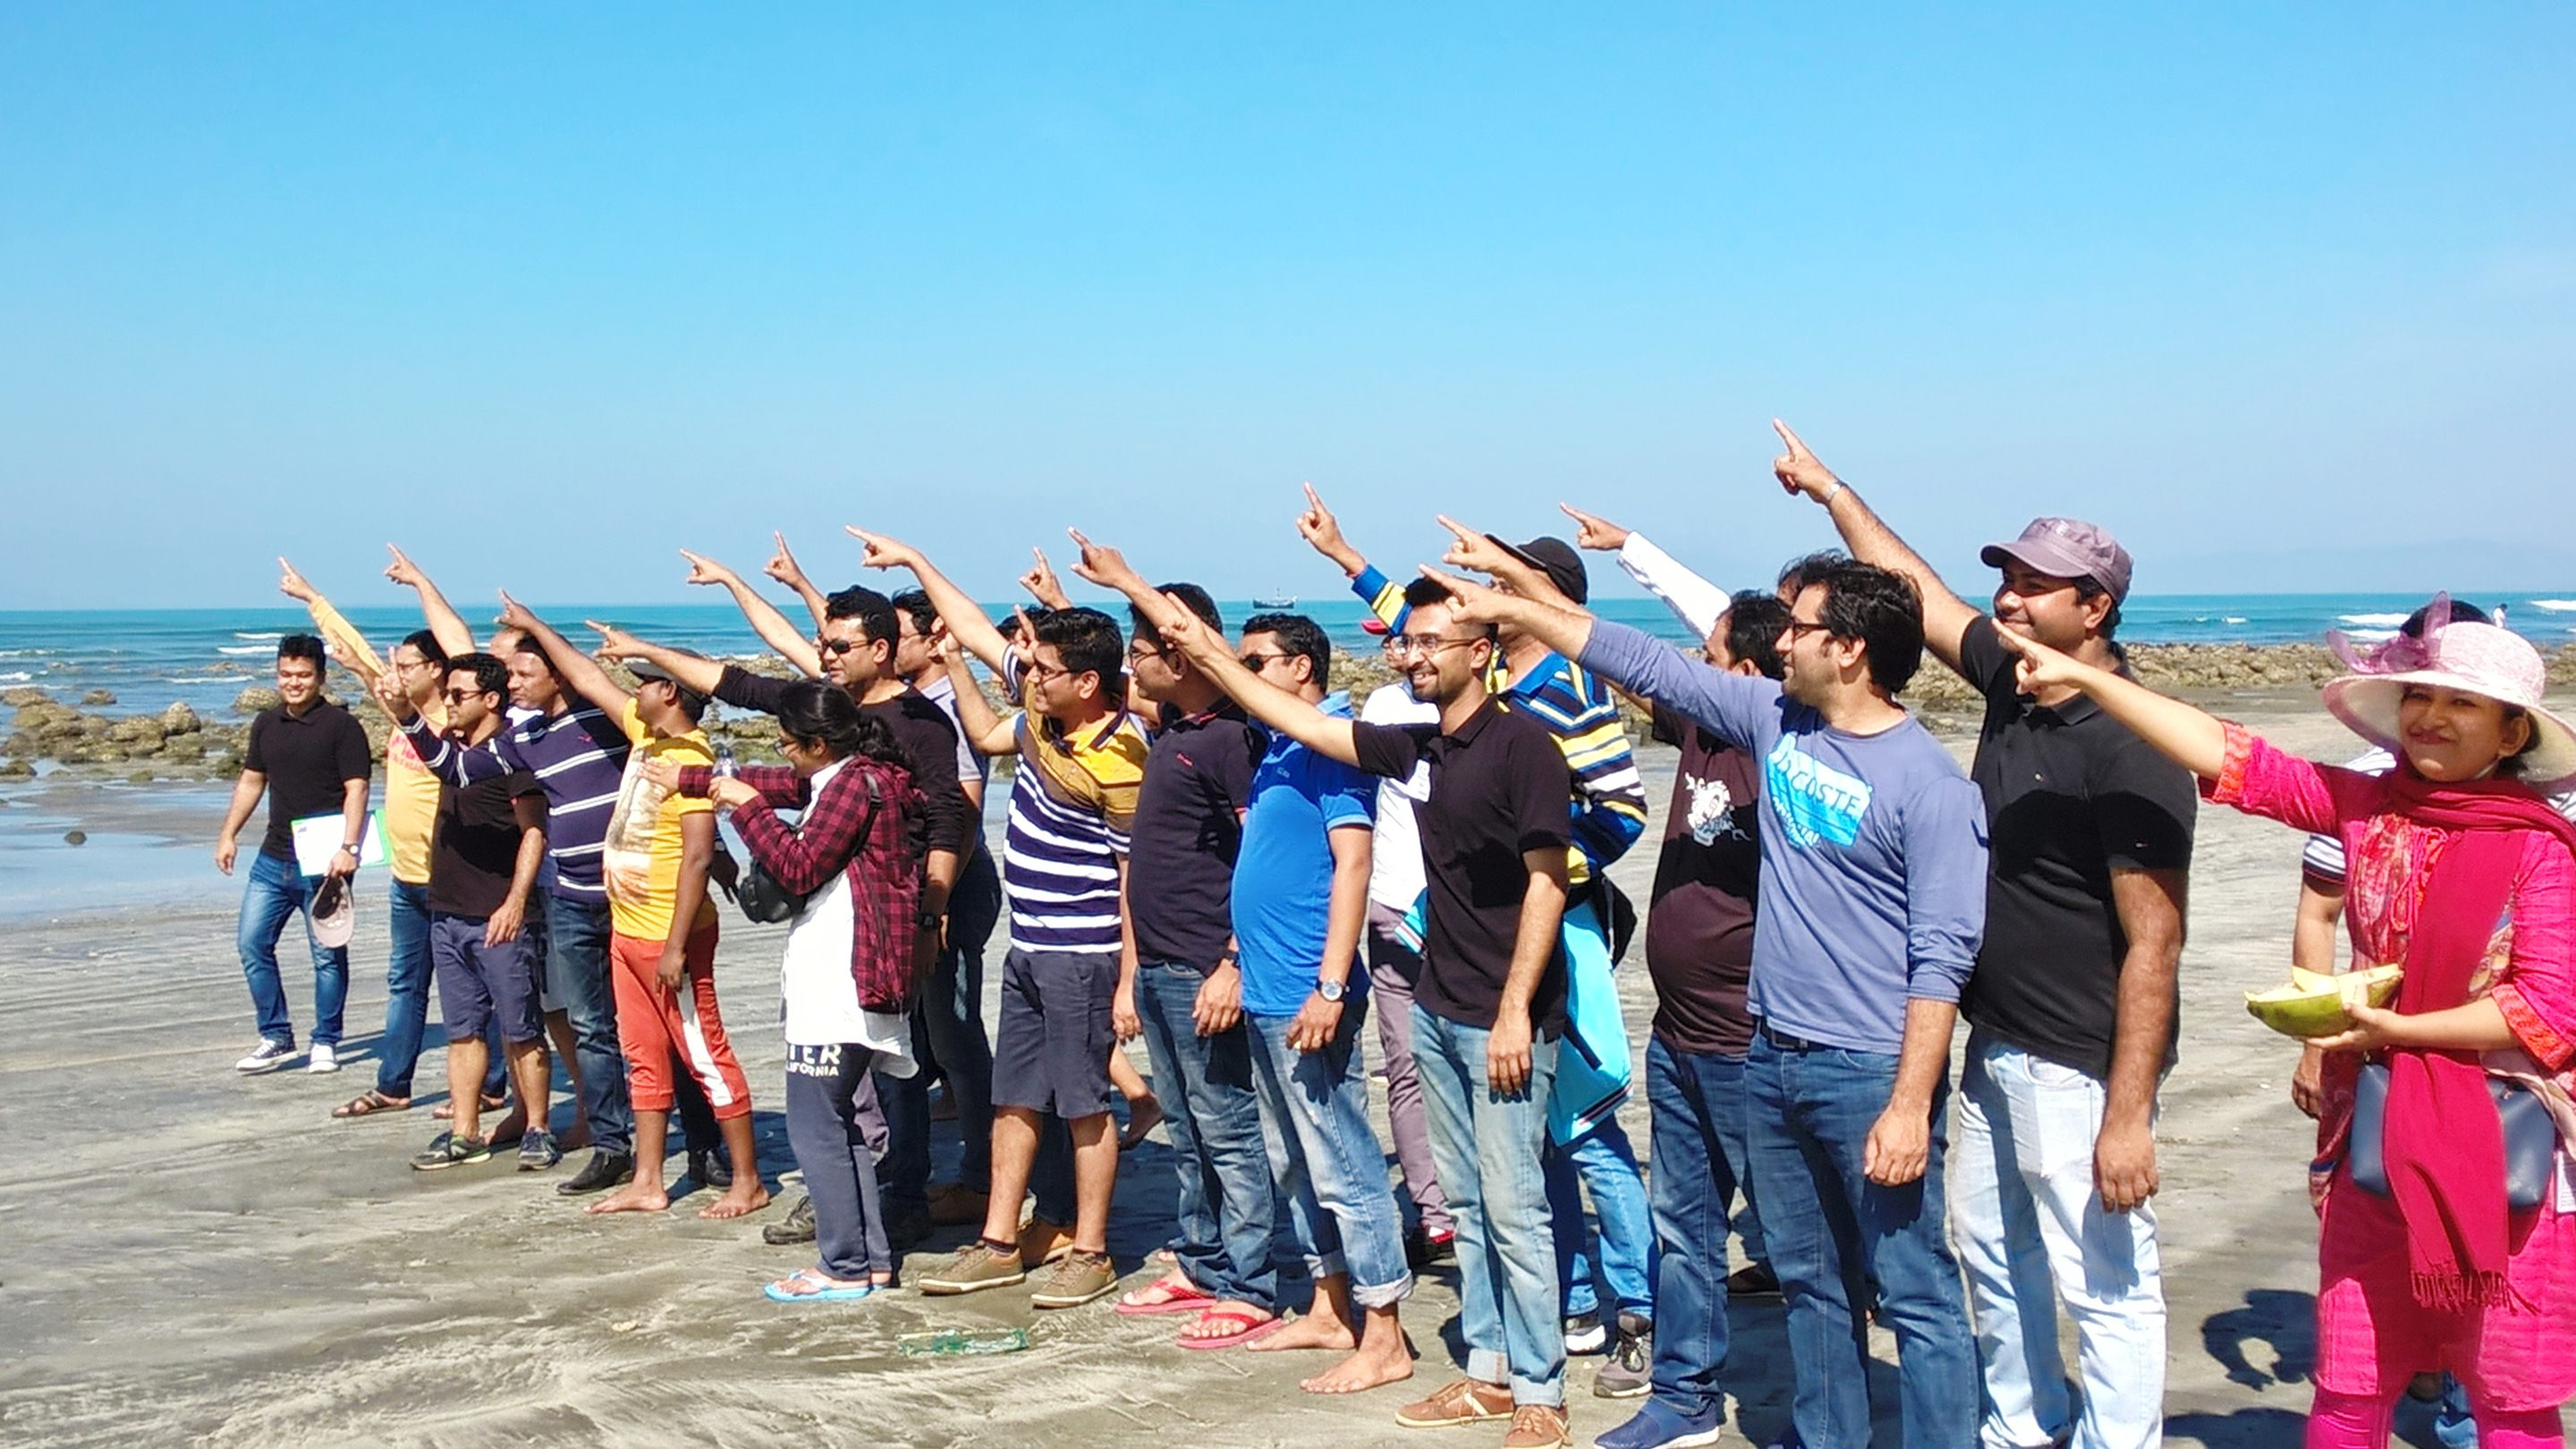 Team Building Training at Saint Martin, Cox's Bazar.